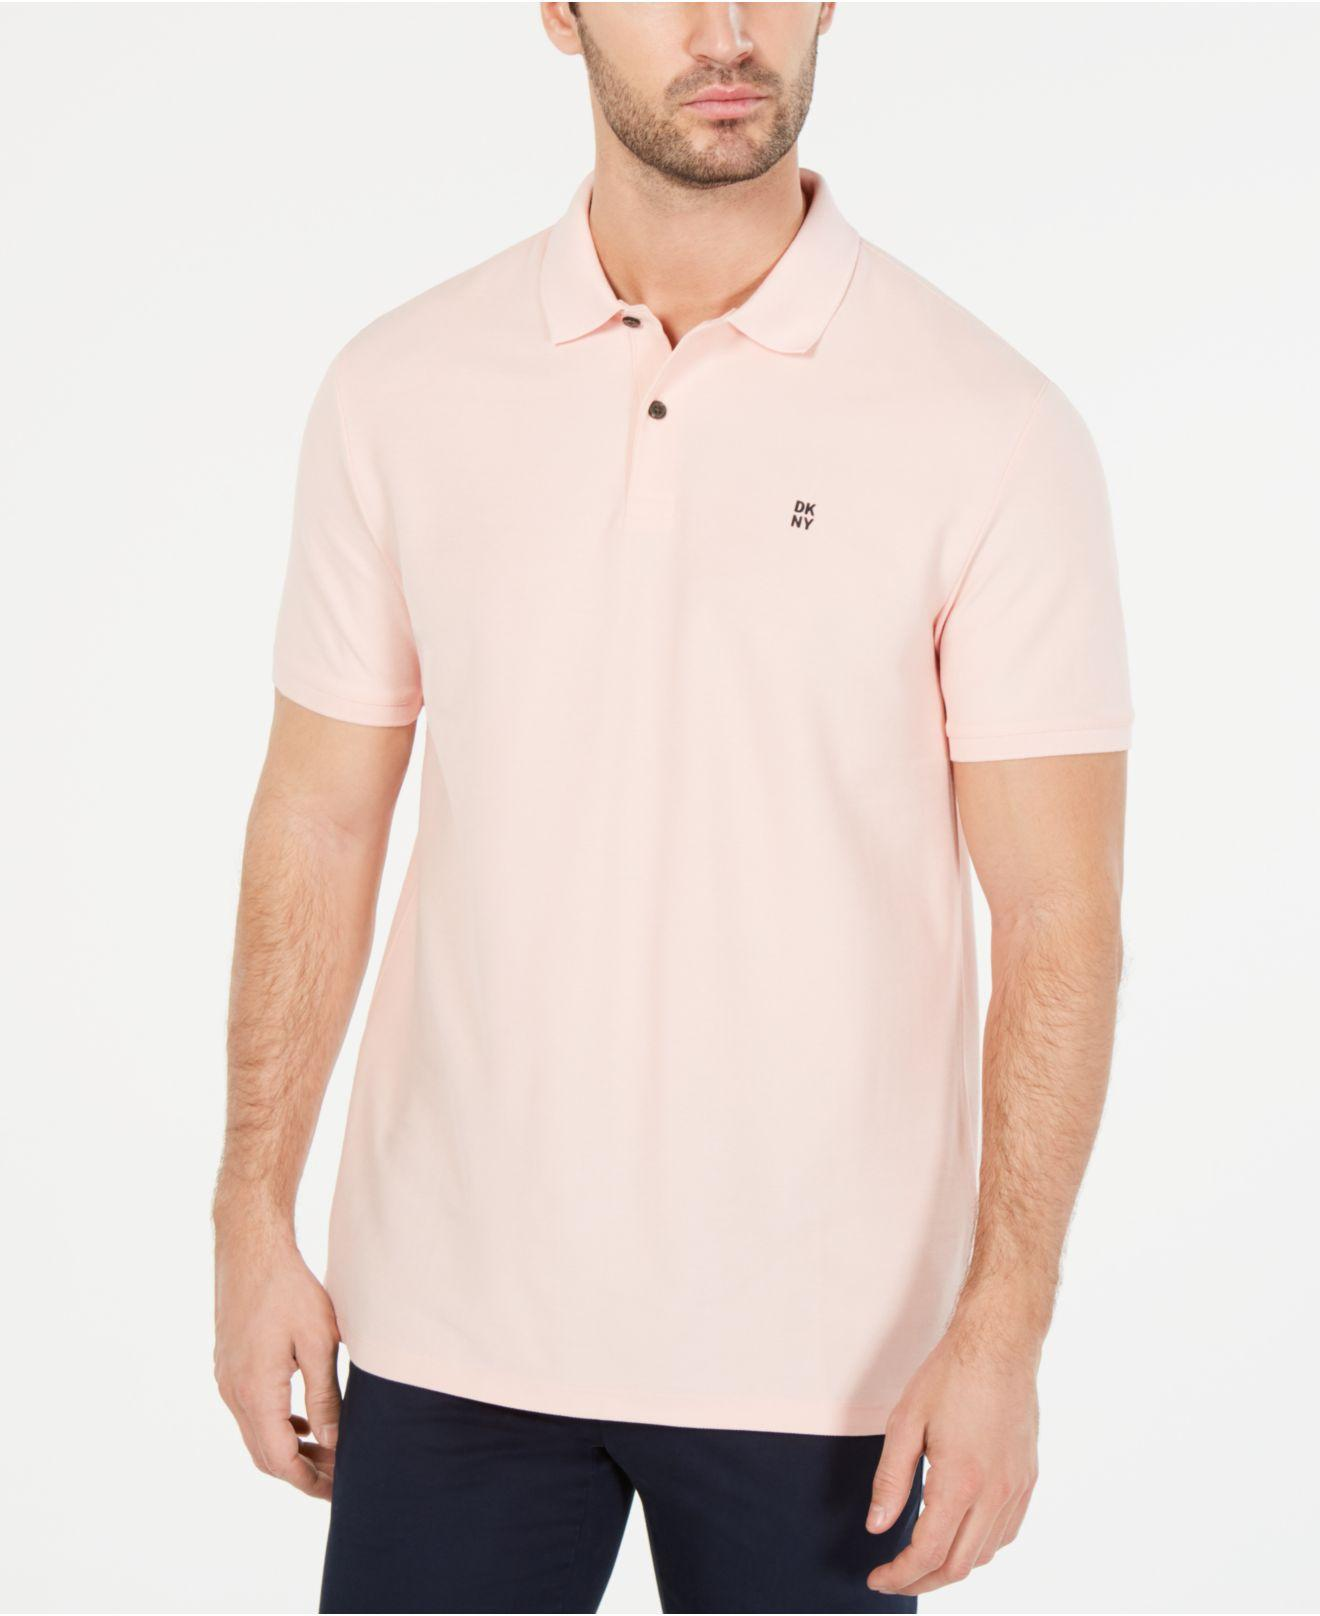 834b841e DKNY Solid Polo Shirt in Pink for Men - Lyst